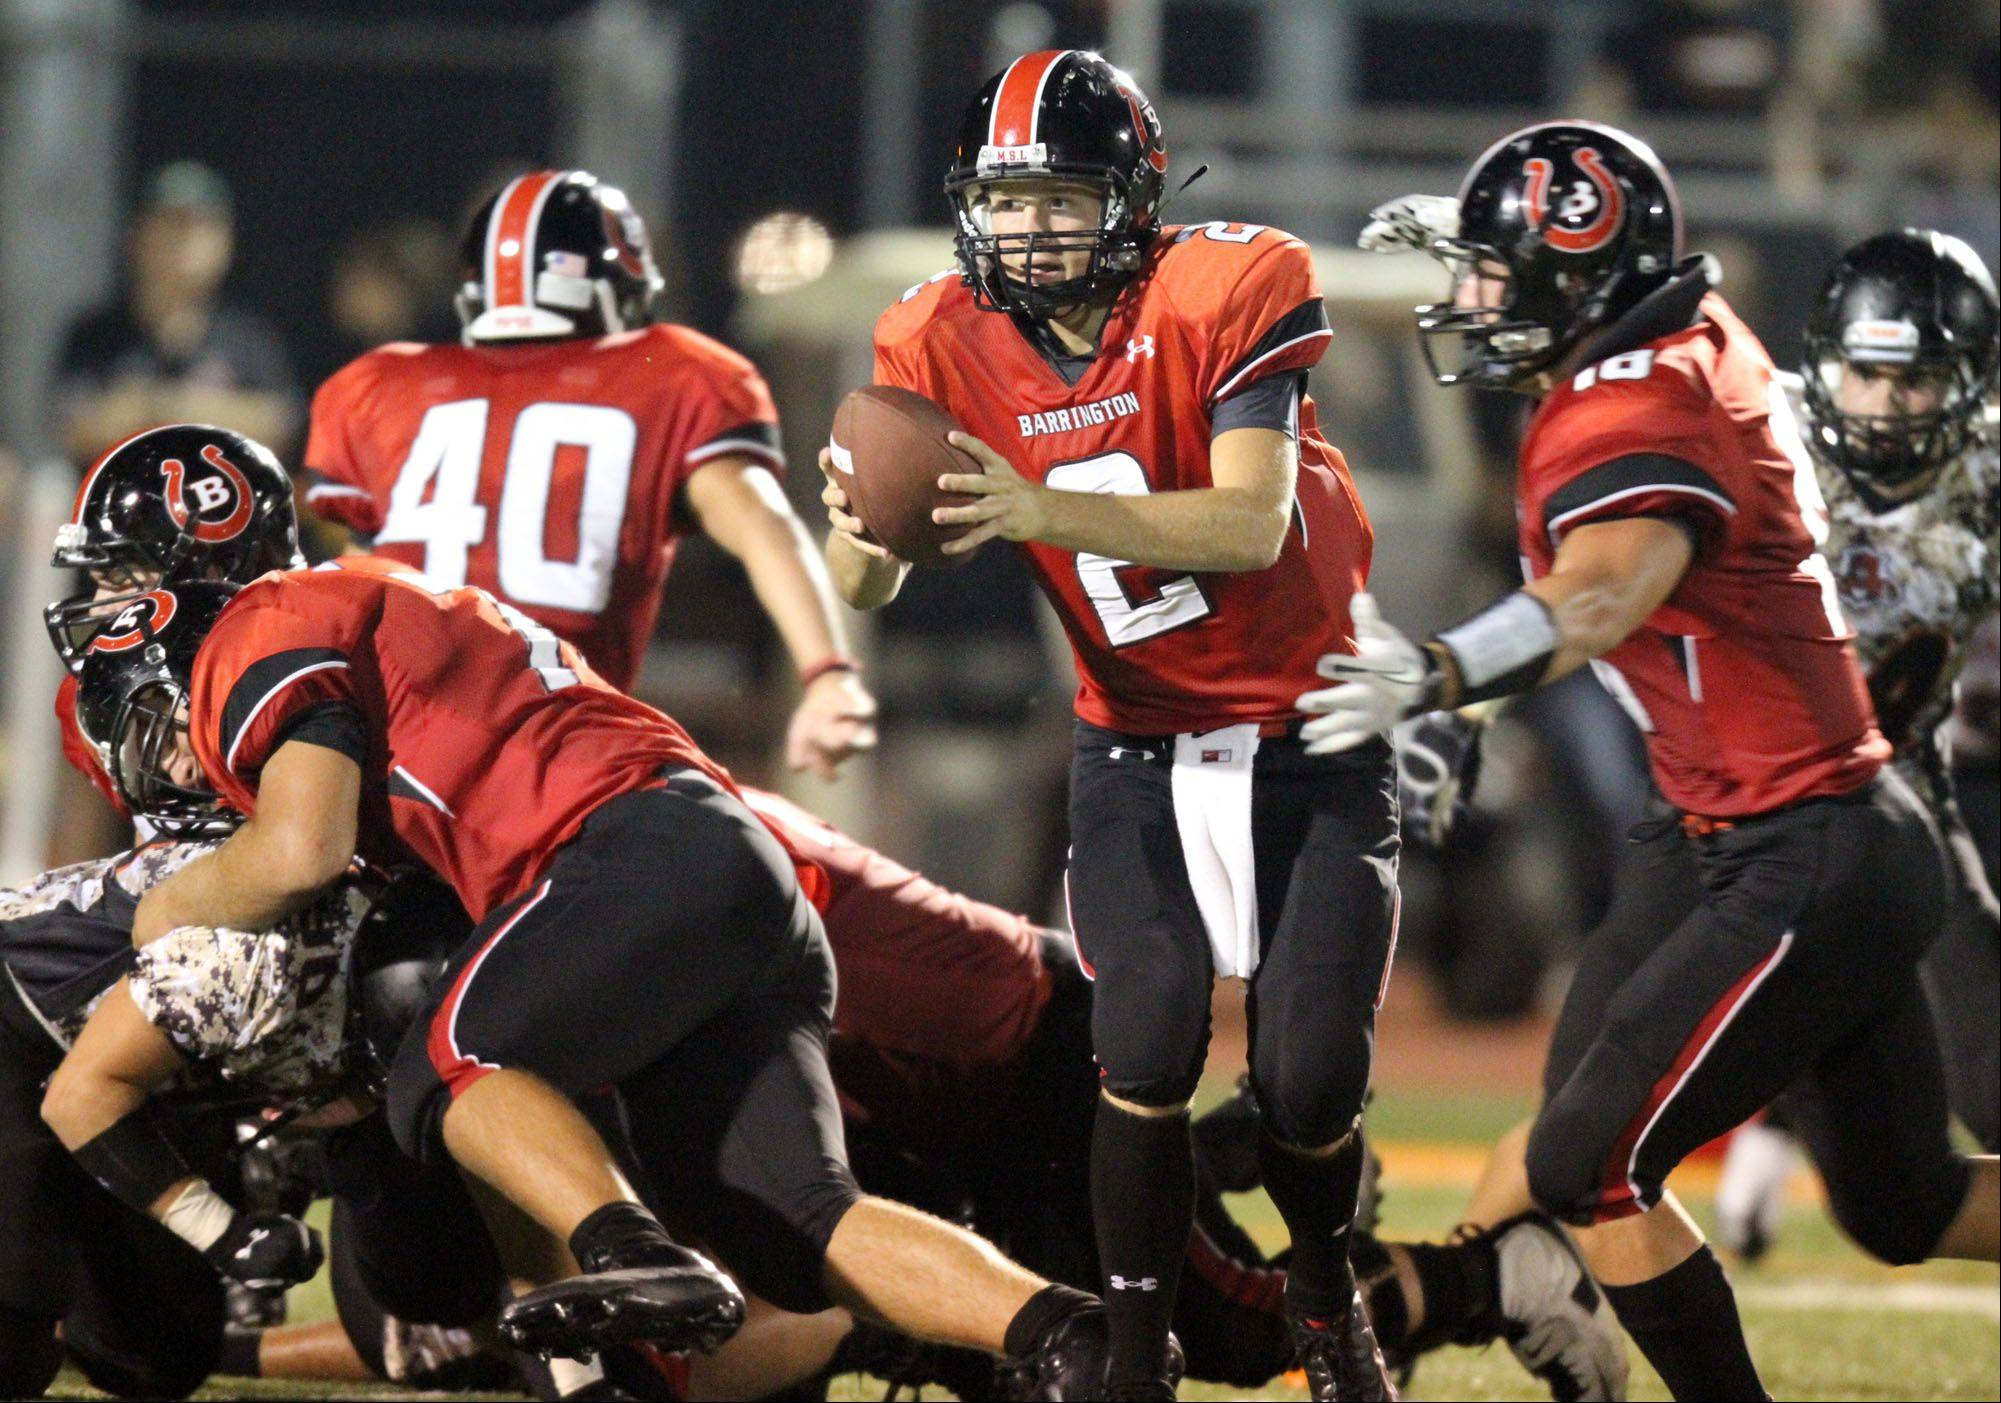 Barrington's quarterback Mark Bennett fakes a handoff to Chase Murdock at Libertyville on Friday, August 26th.